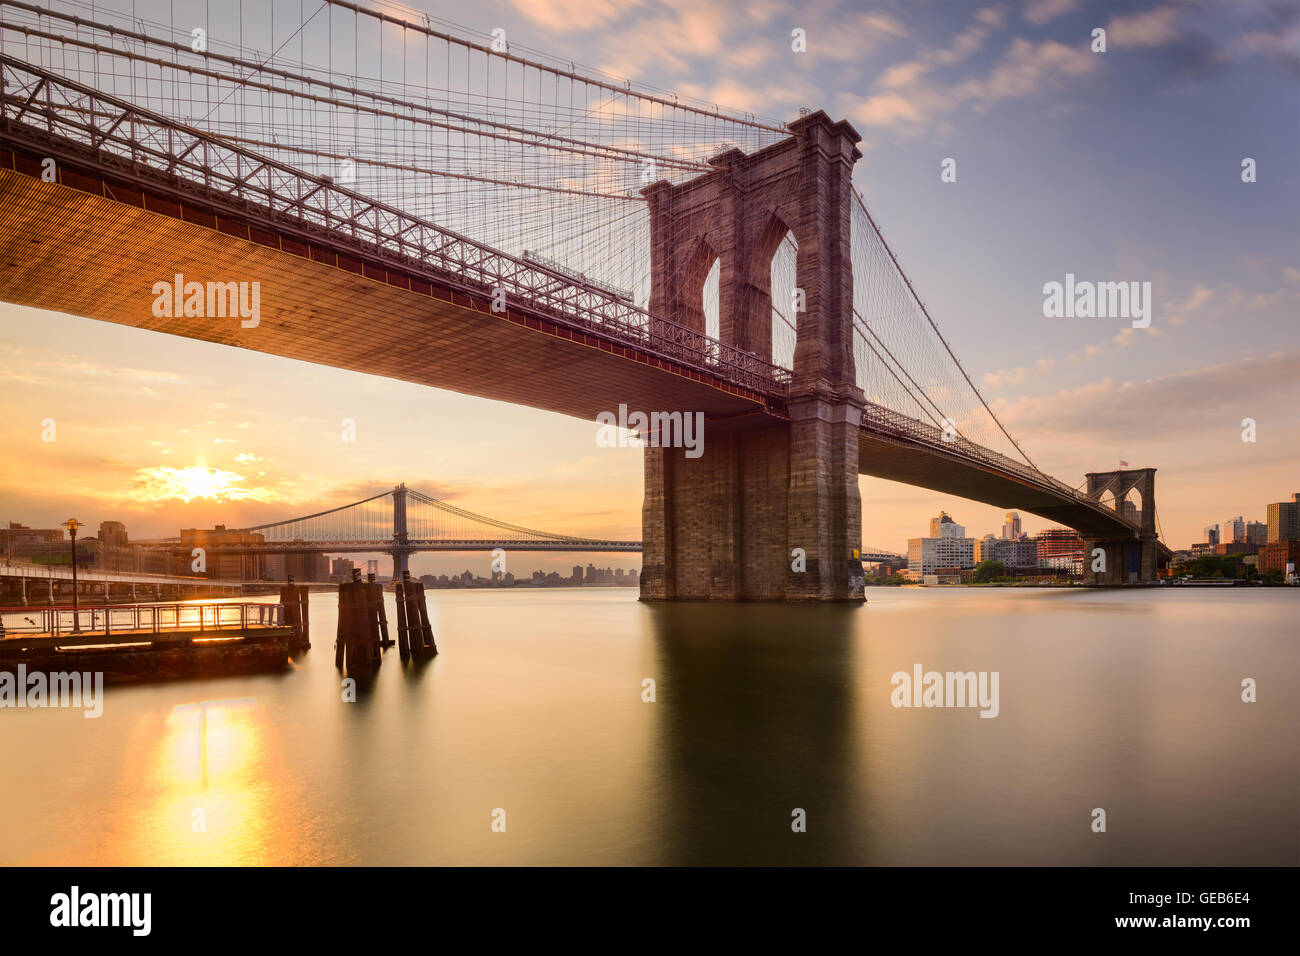 Brooklyn Bridge in New York City at sunrise. - Stock Image